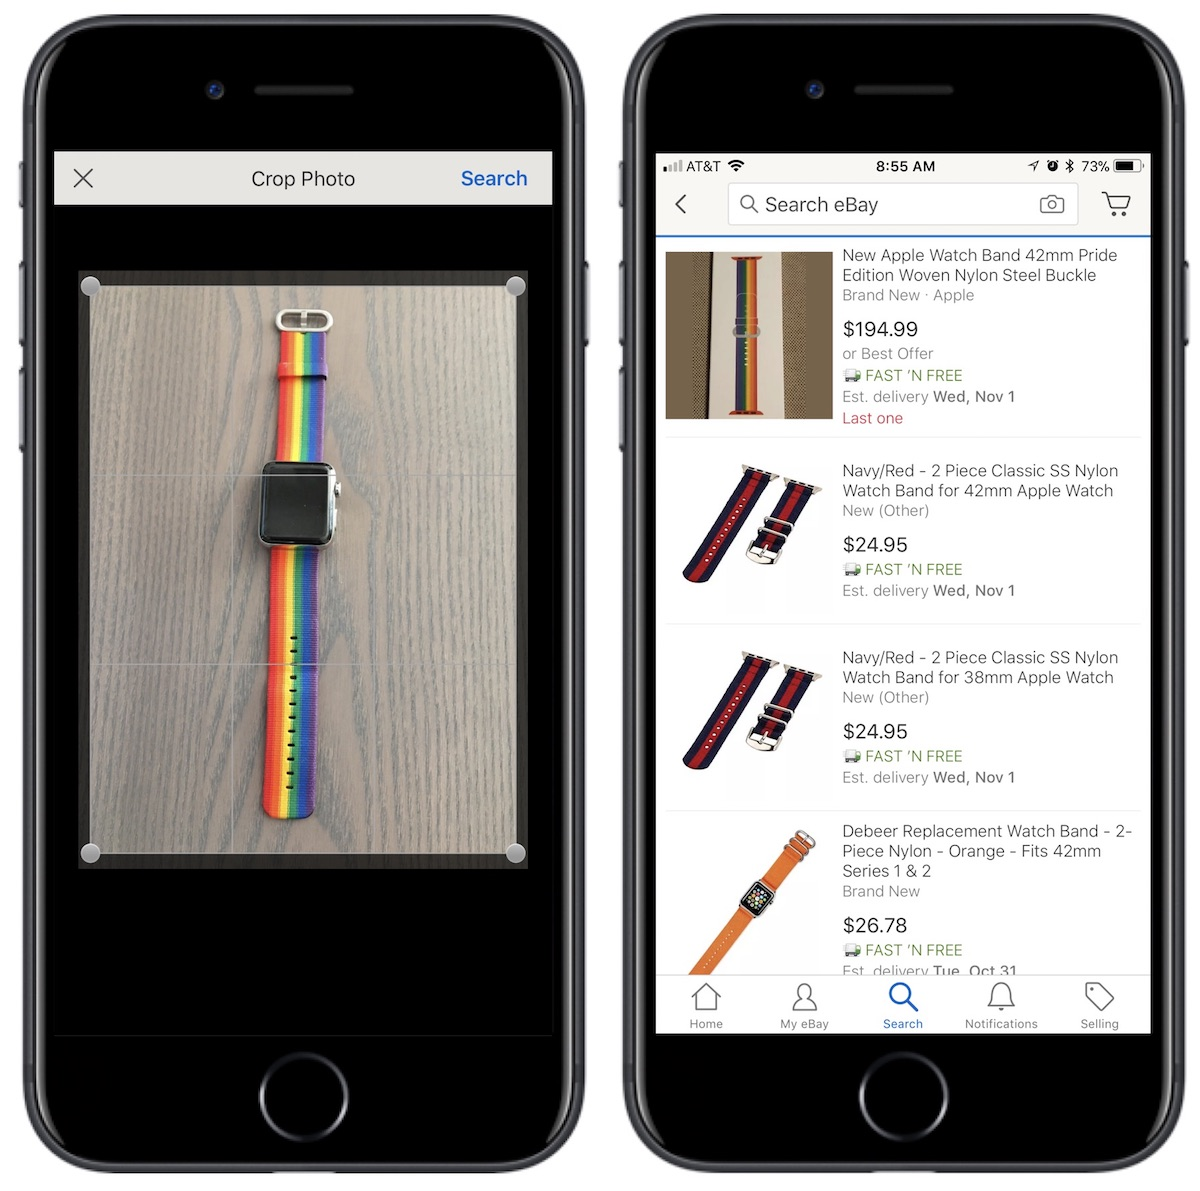 eBay's New Image Search Feature is Now Live Within iOS App - MacRumors